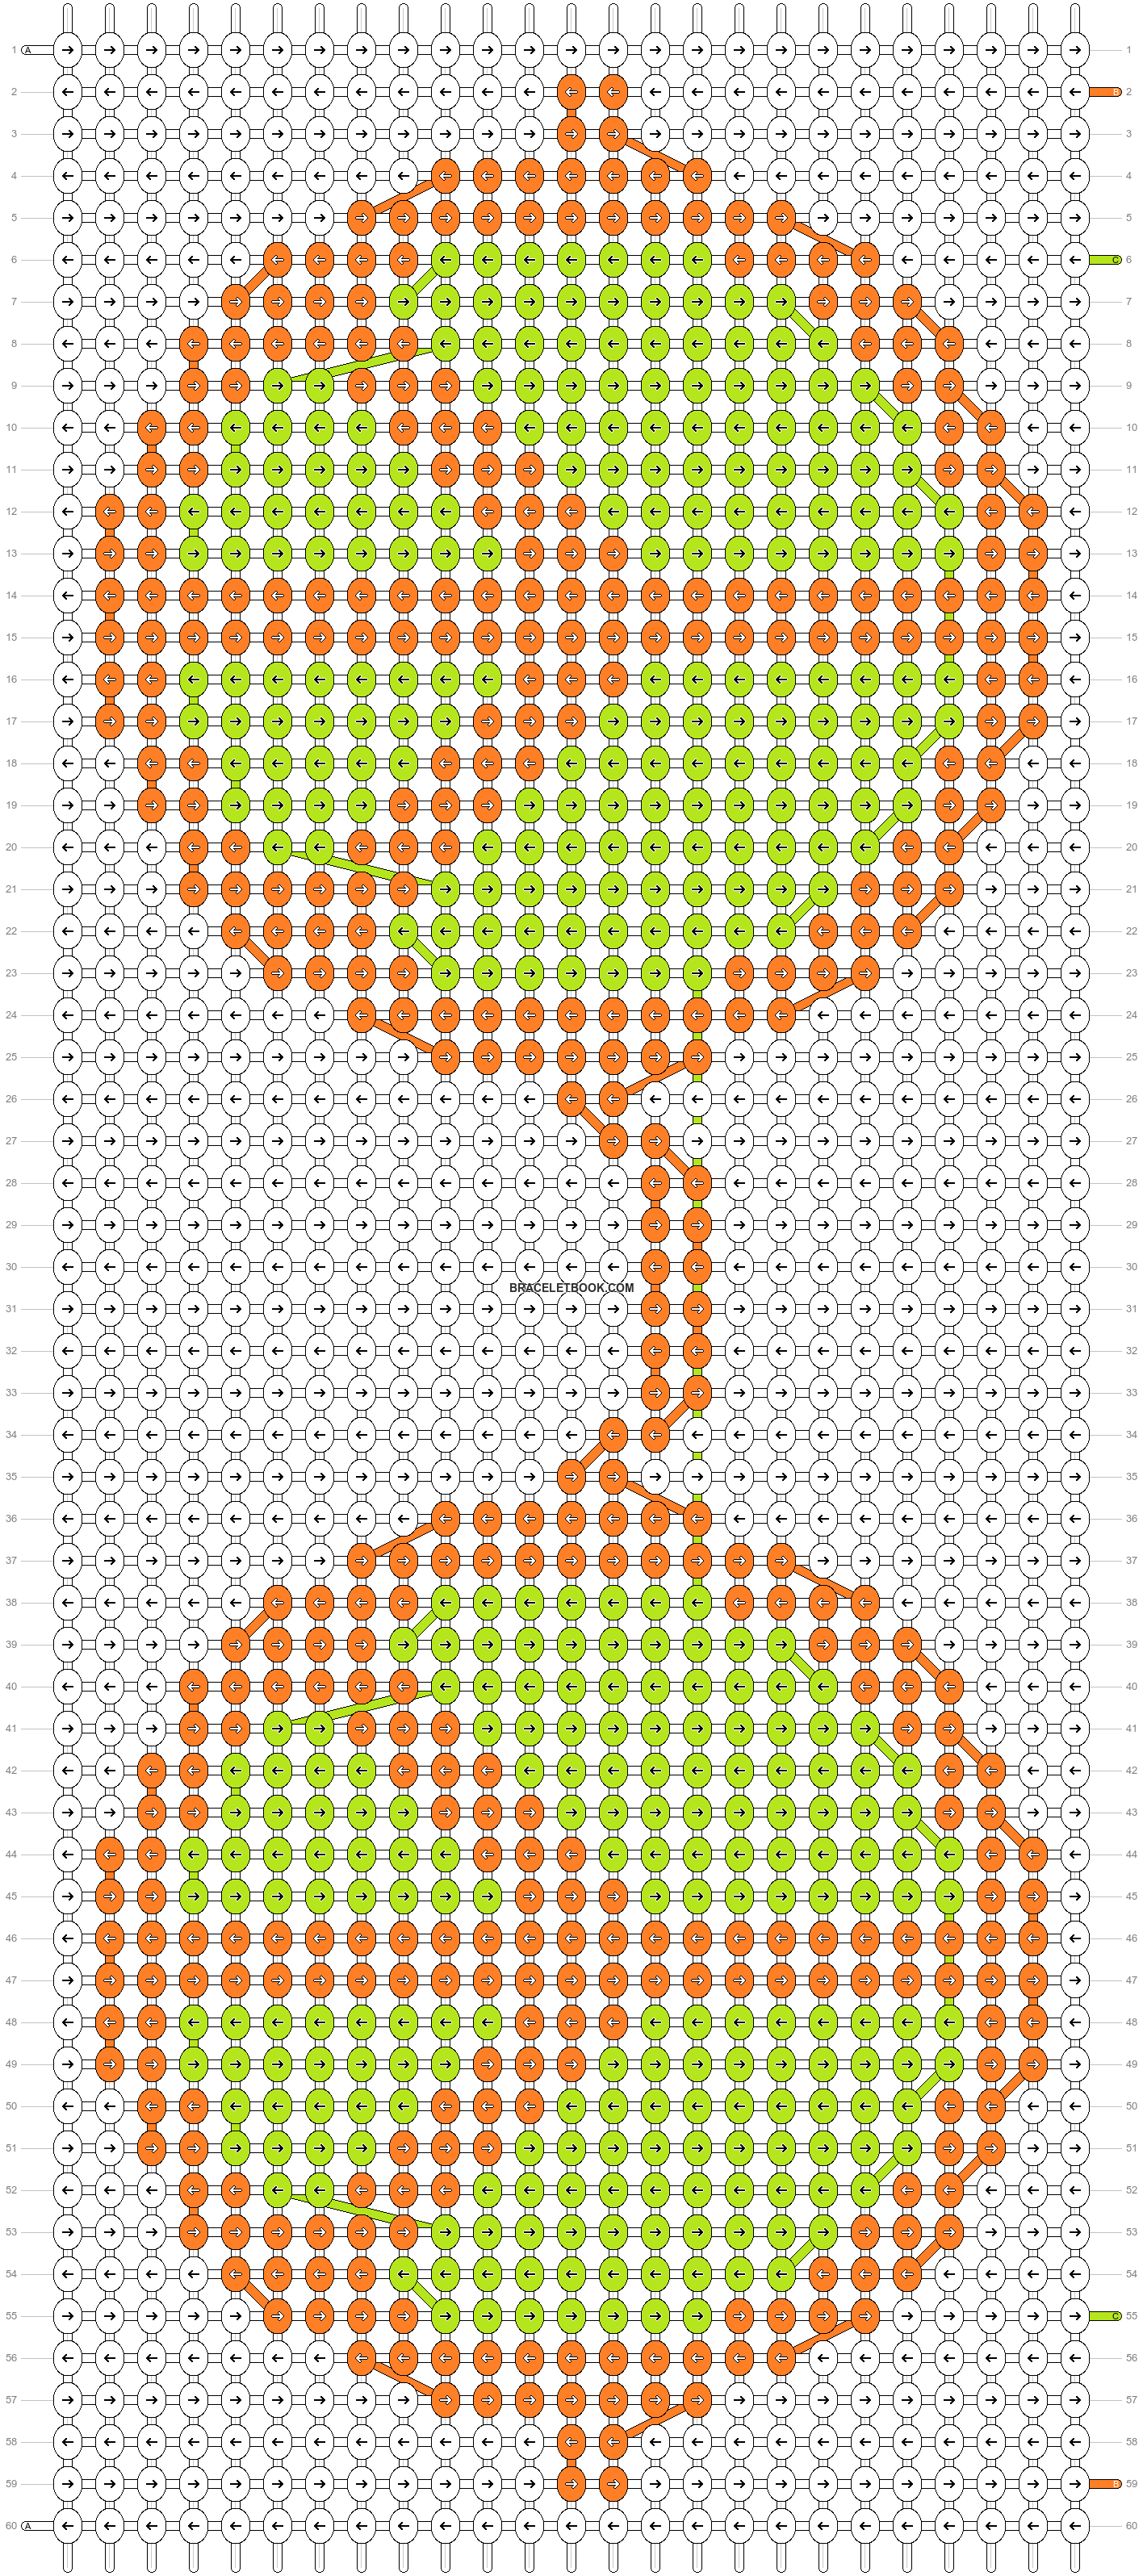 Alpha Pattern #22205 added by funnybunny